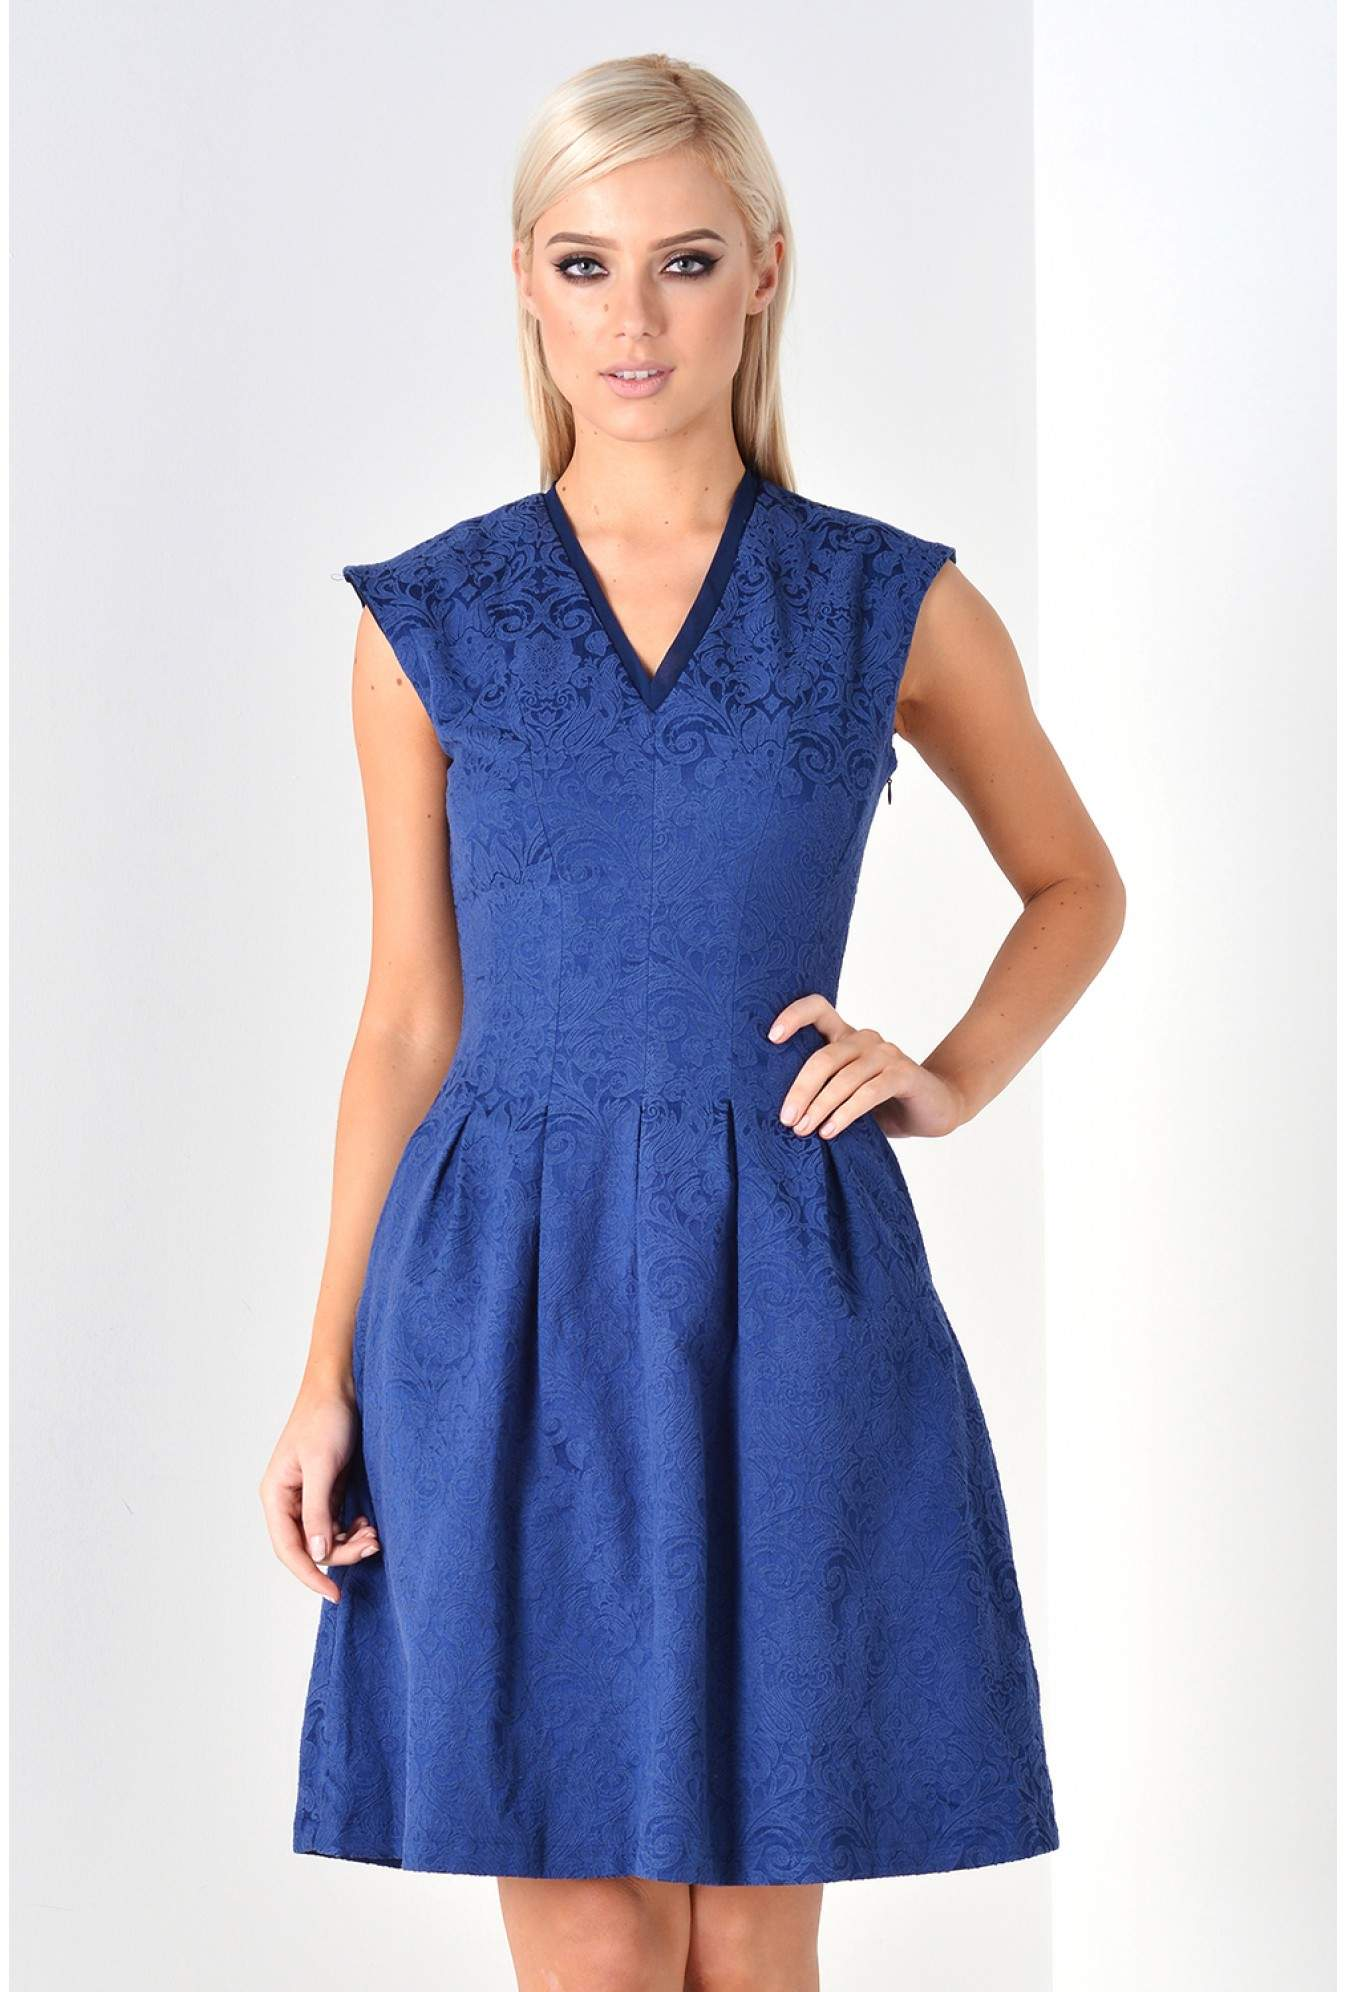 Marc Angelo Clarice Jacquard Skater Dress in Navy  3ca59b37a